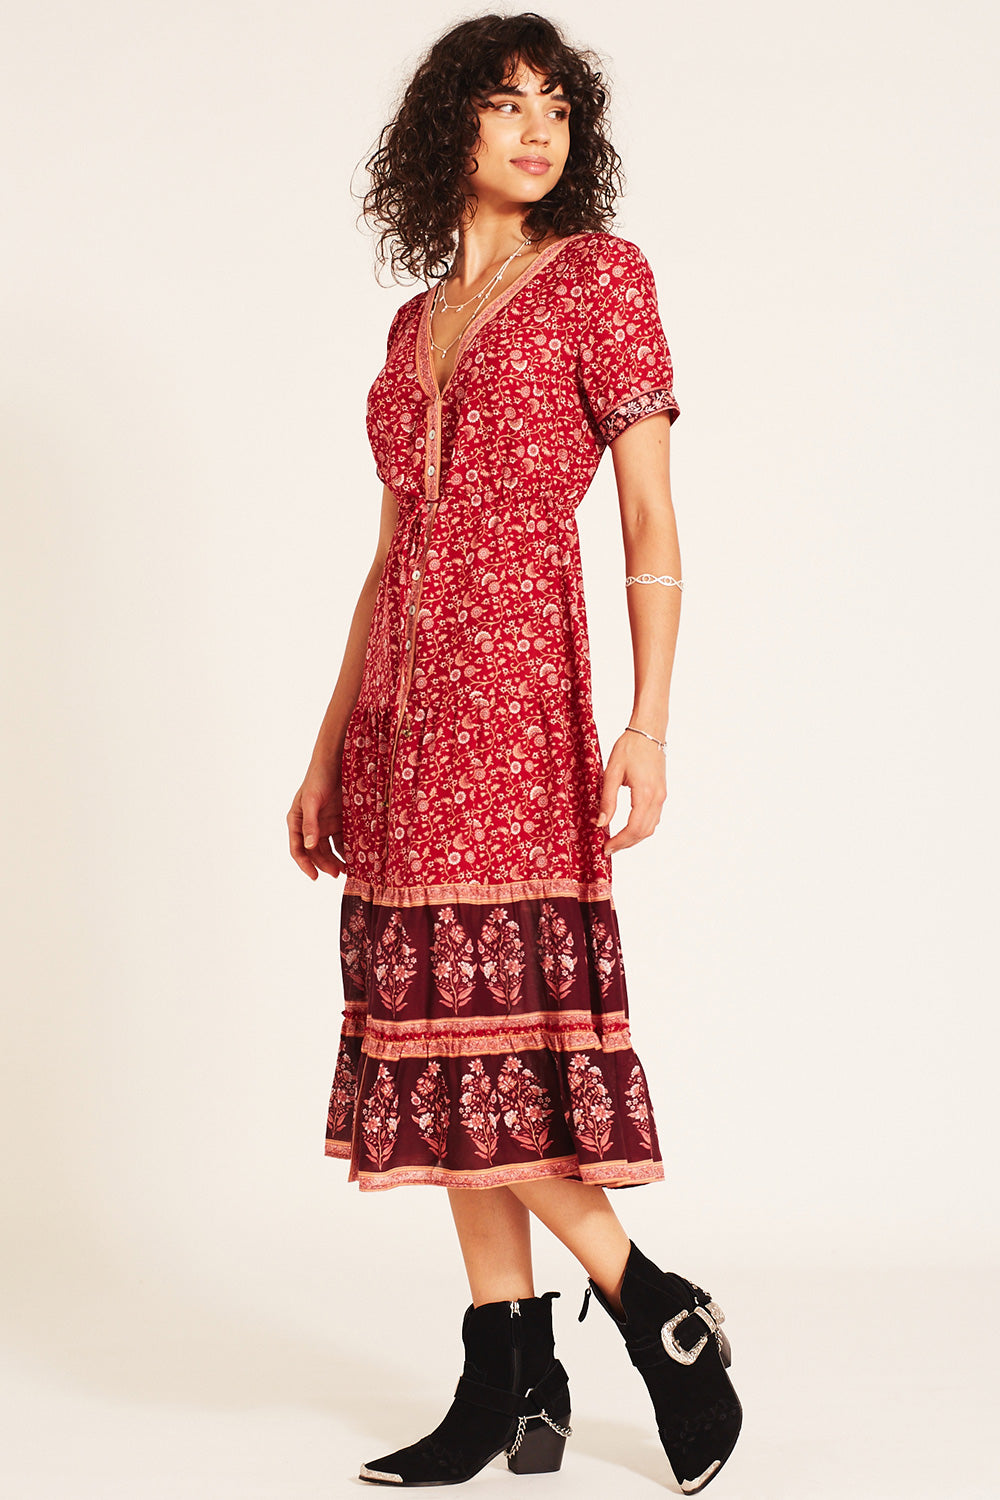 Wisteria Sundress in Crimson